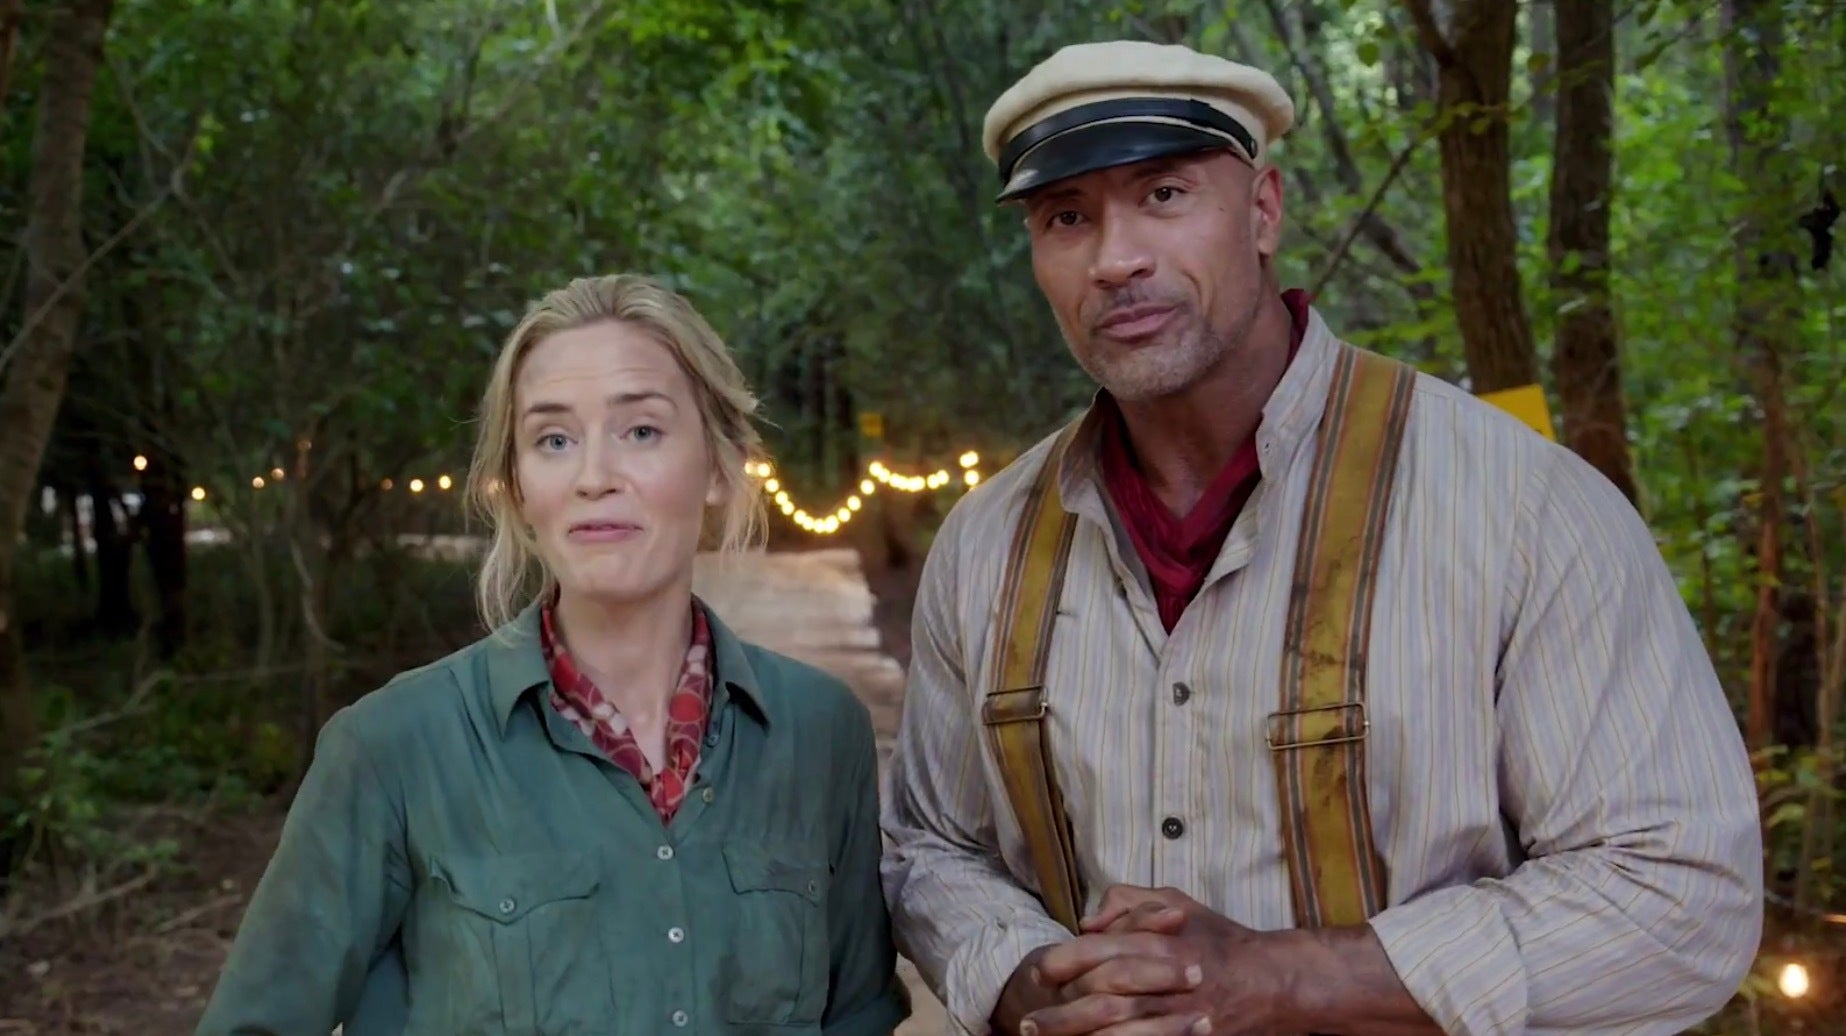 Emily Blunt And Dwayne Johnson Ham It Up On The Set Of Jungle Cruise